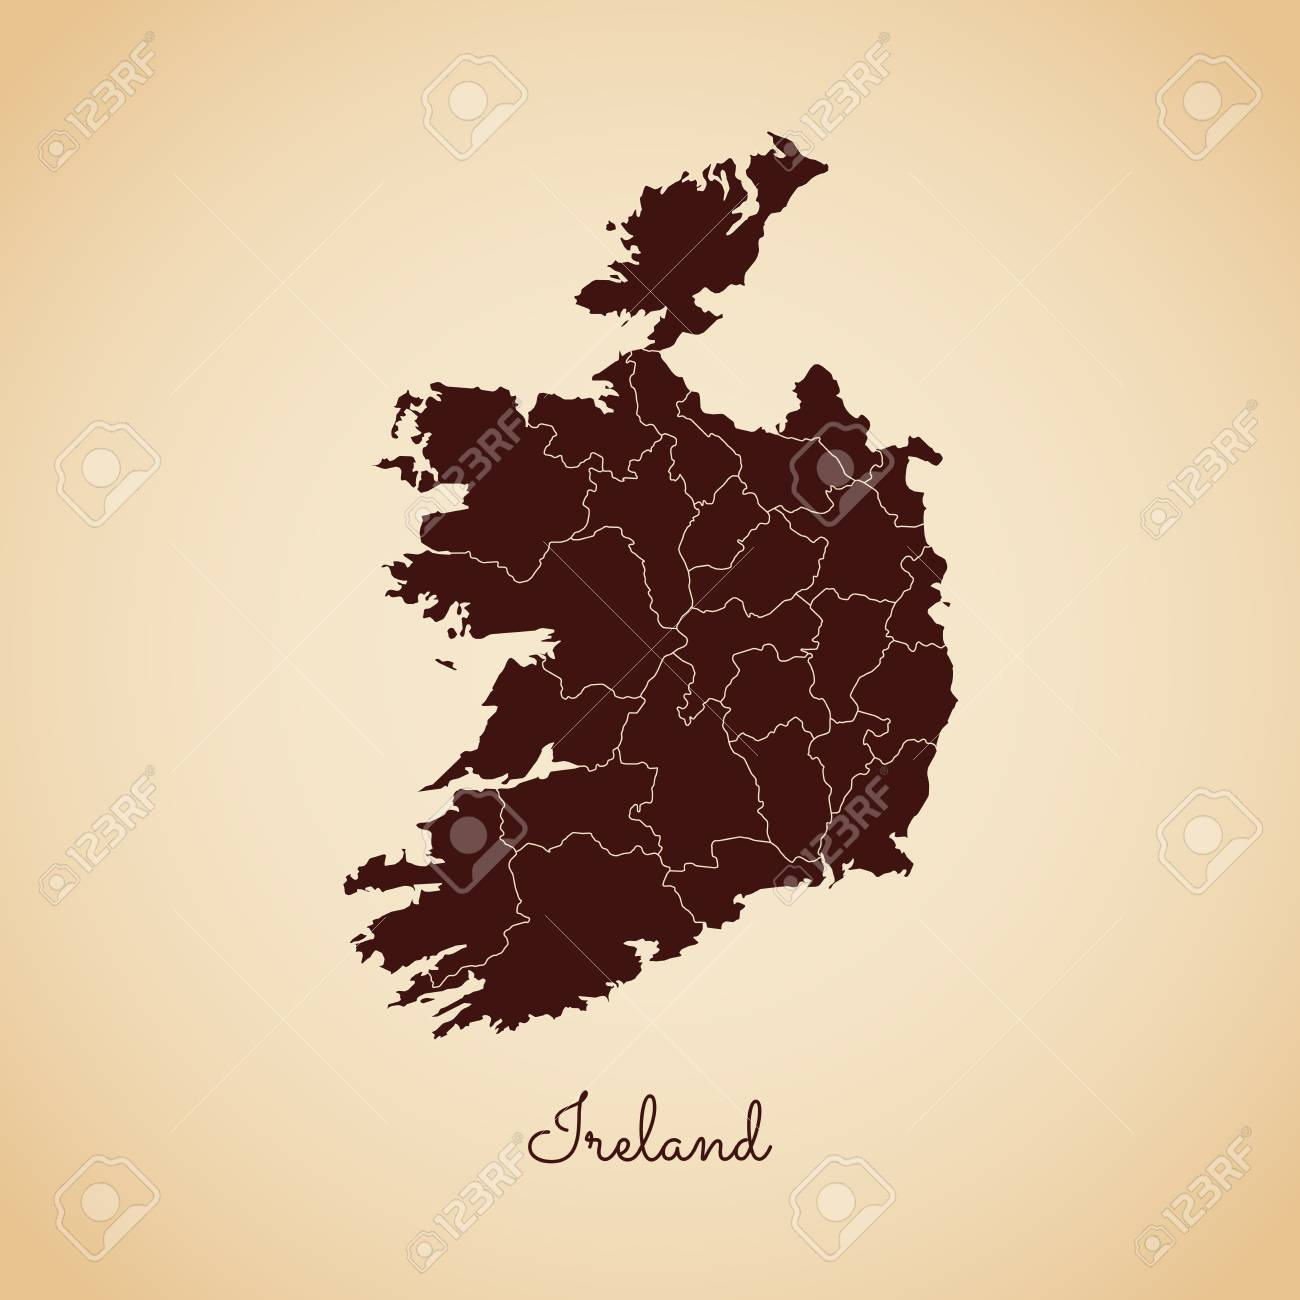 Detailed Map Of Ireland Vector.Ireland Region Map Retro Style Brown Outline On Old Paper